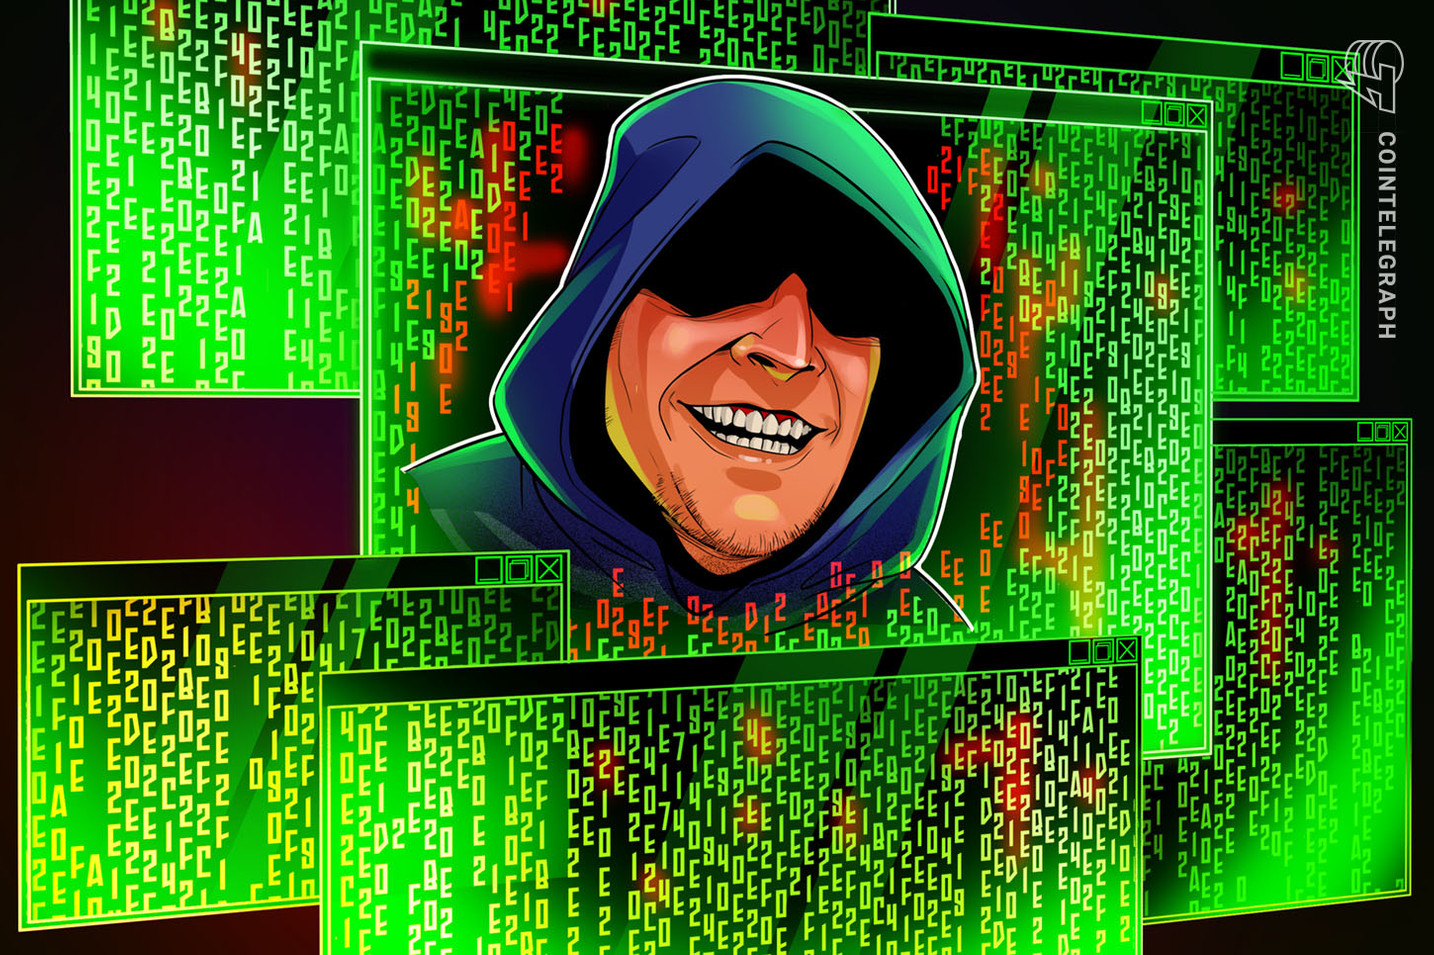 Hackers post racist and offensive messages to Blockfolio users